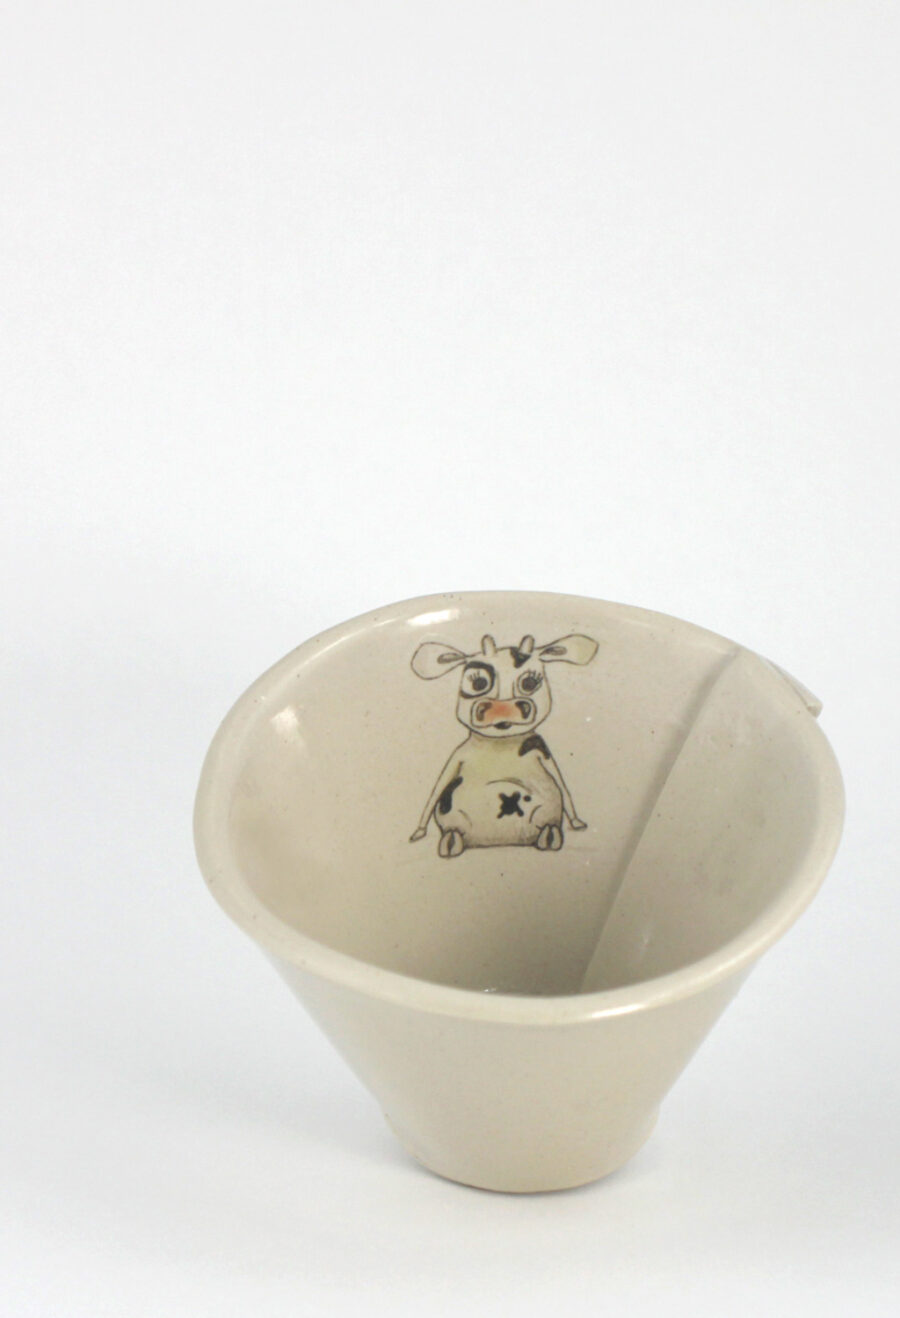 kleine-keramikschüssel-kuh-am-viehthetater-my-deer-illustrated-ceramics-2